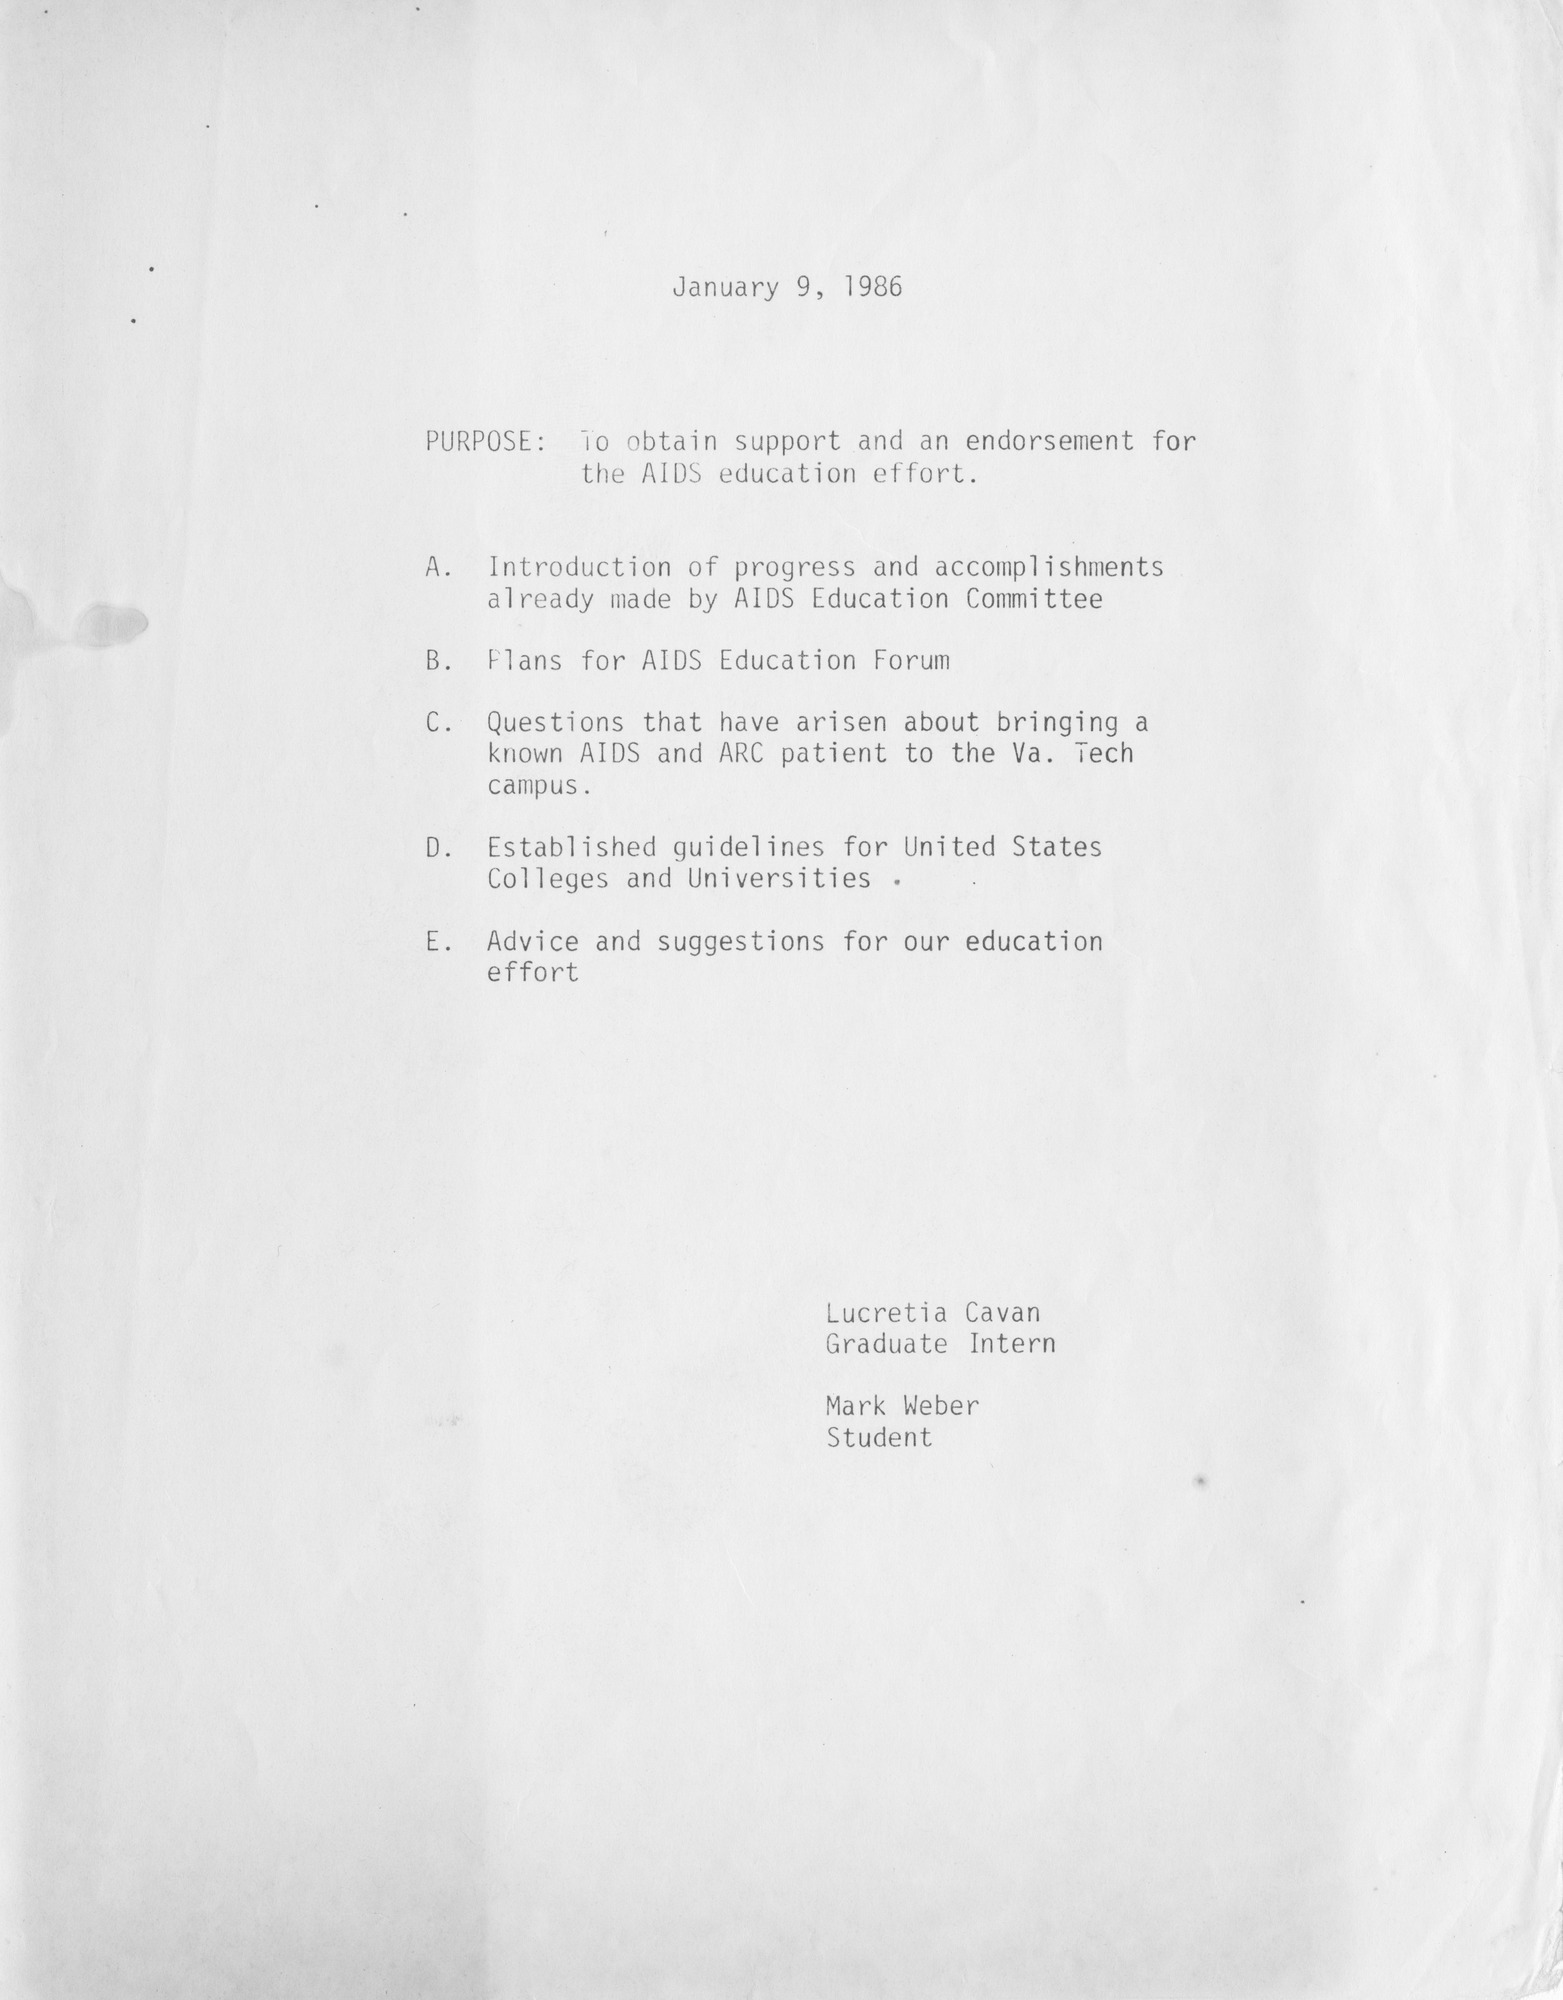 Ms2014-010_WeberMark_ObjectivesAIDSEducation_1986_0109.jpg